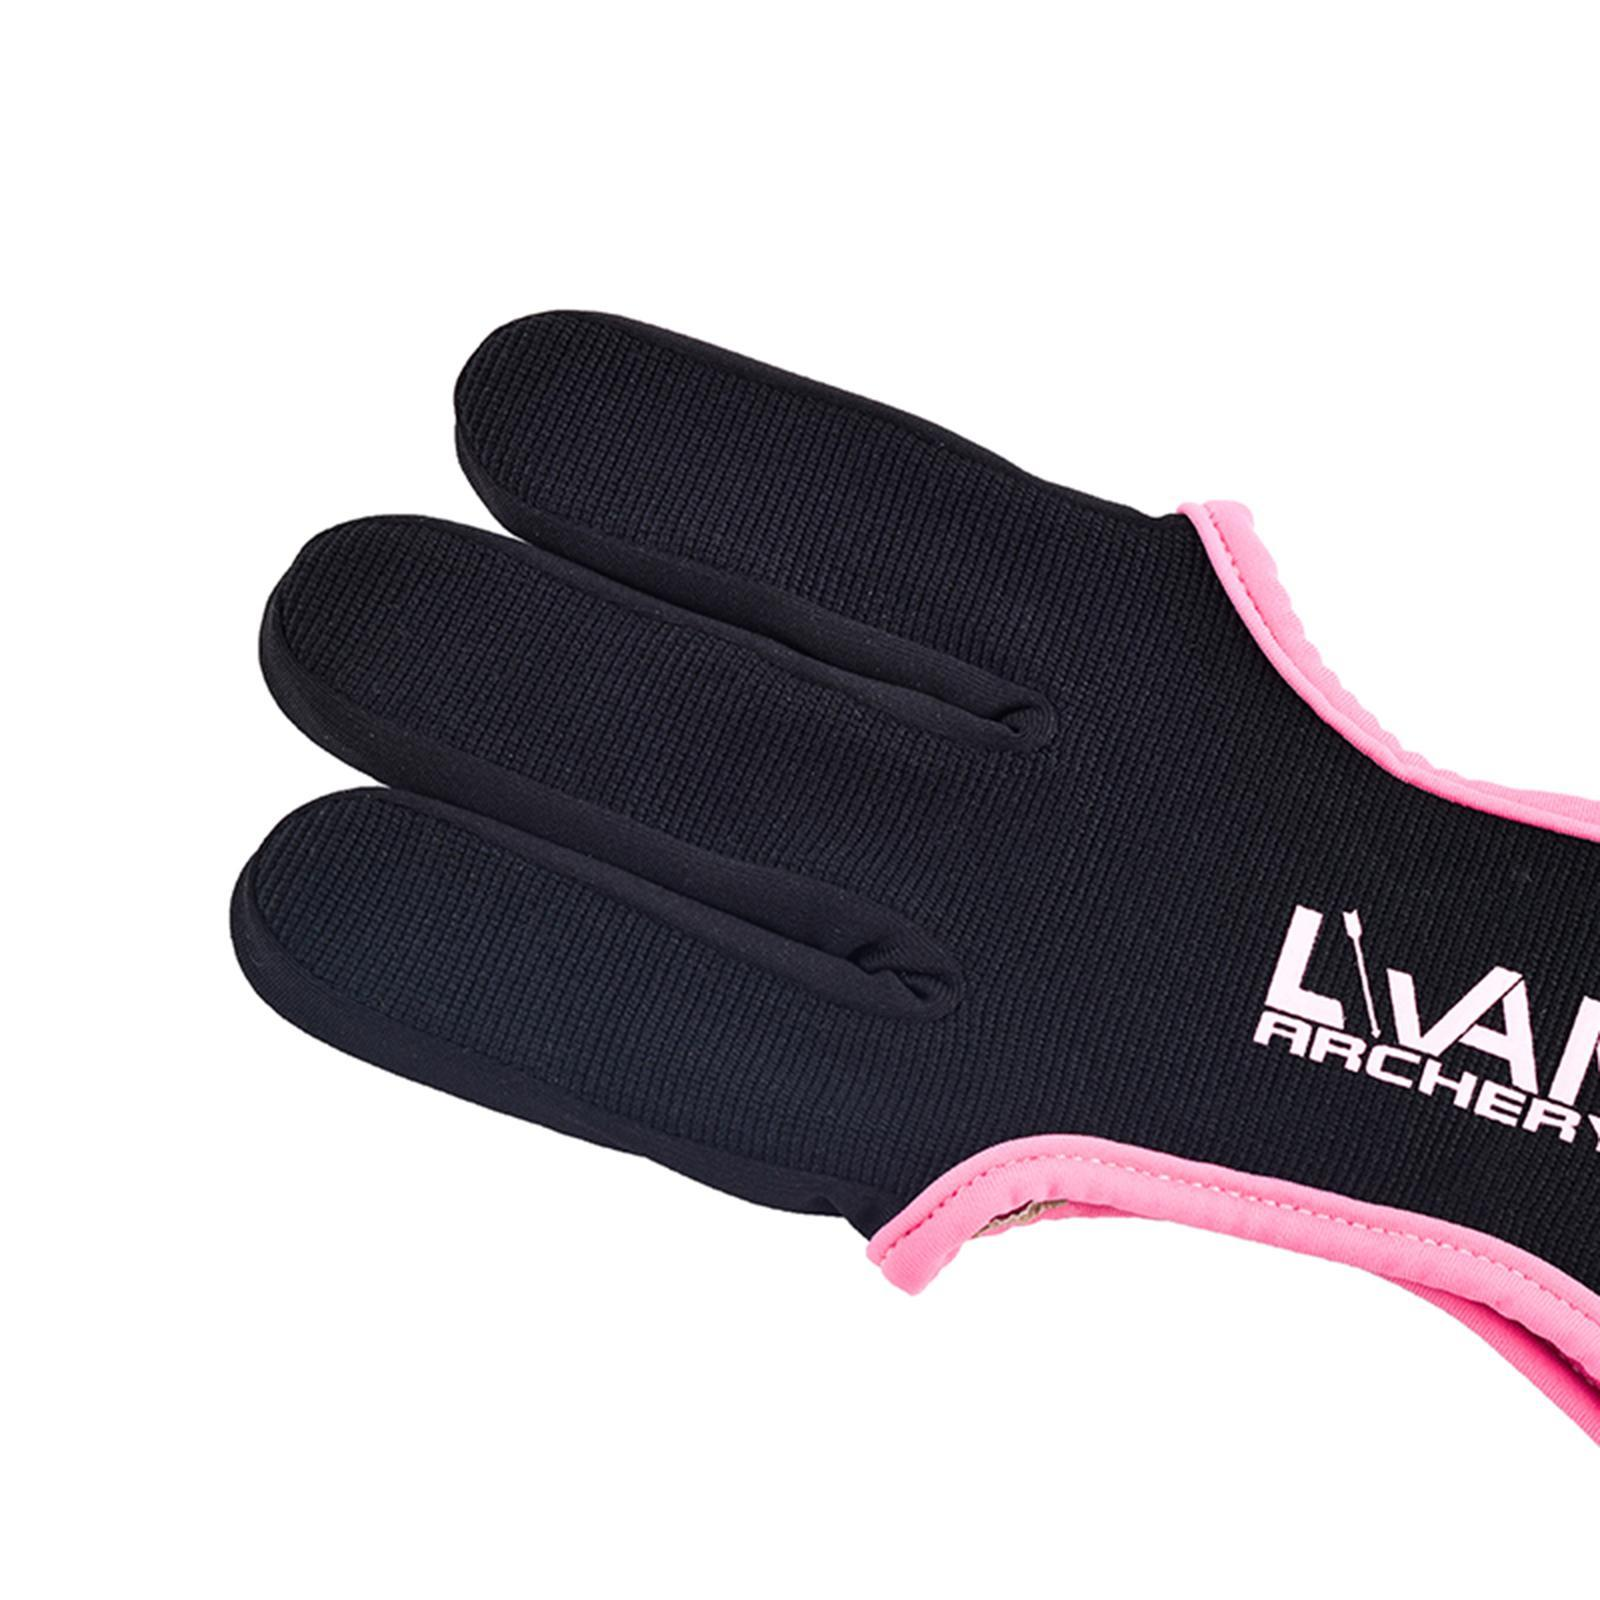 thumbnail 9 - Archery Glove for Recurve & Compound Bow 3 Finger Guard for Women Men Youth